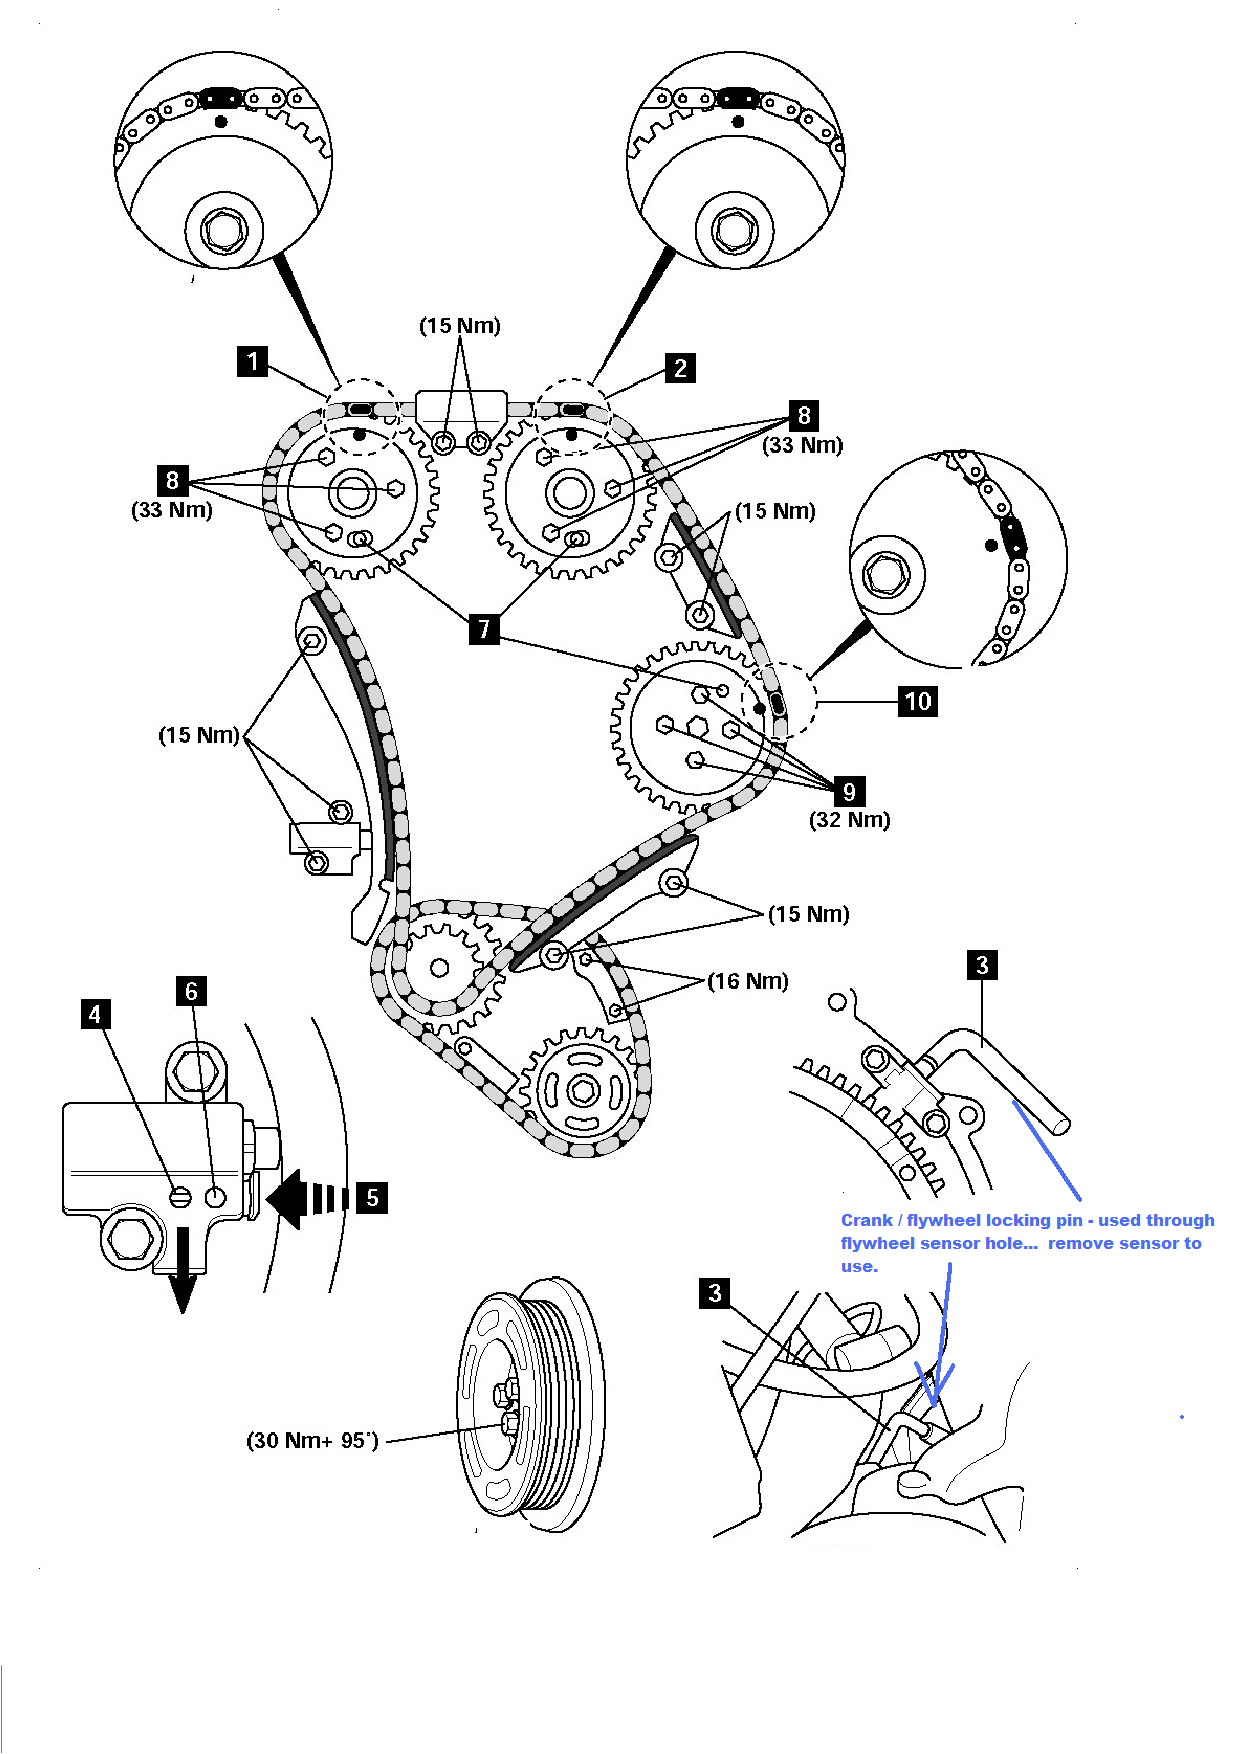 i u0026 39 m tring to set the timing on a ford duratorq 2 4l engine